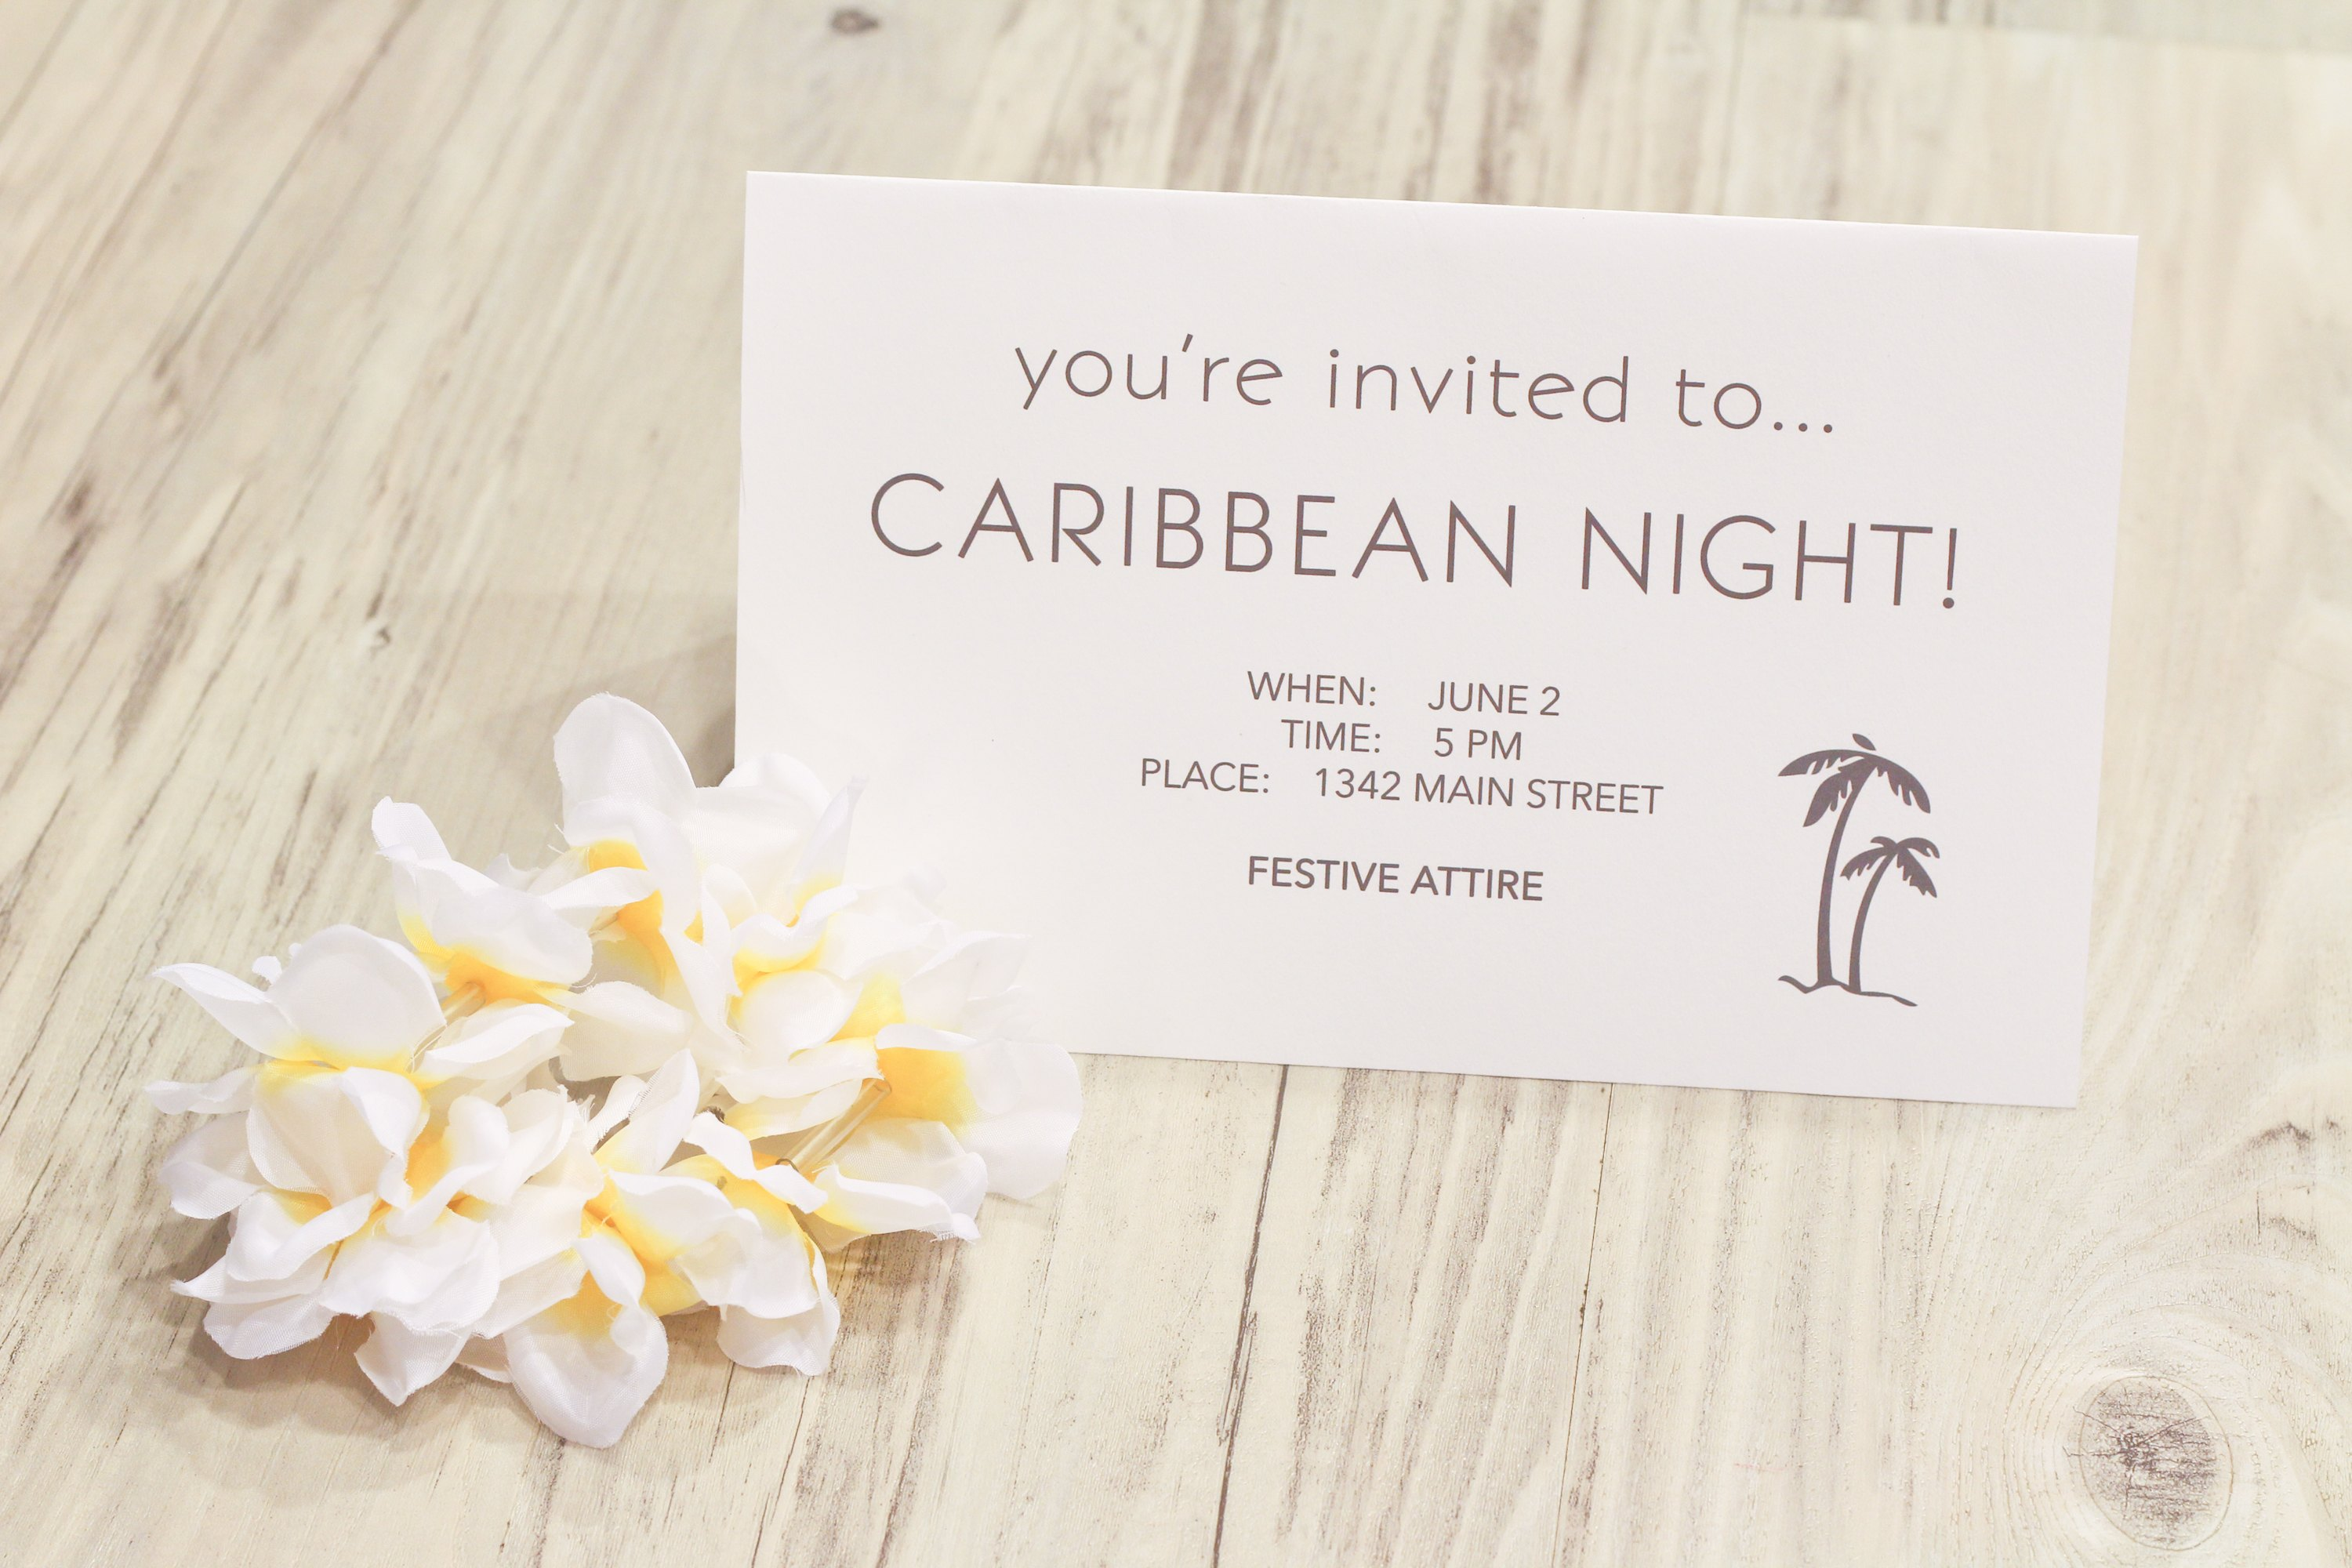 Caribbean Theme Party Ideas On Pinterest: What To Wear To A Caribbean Theme Party (with Pictures)